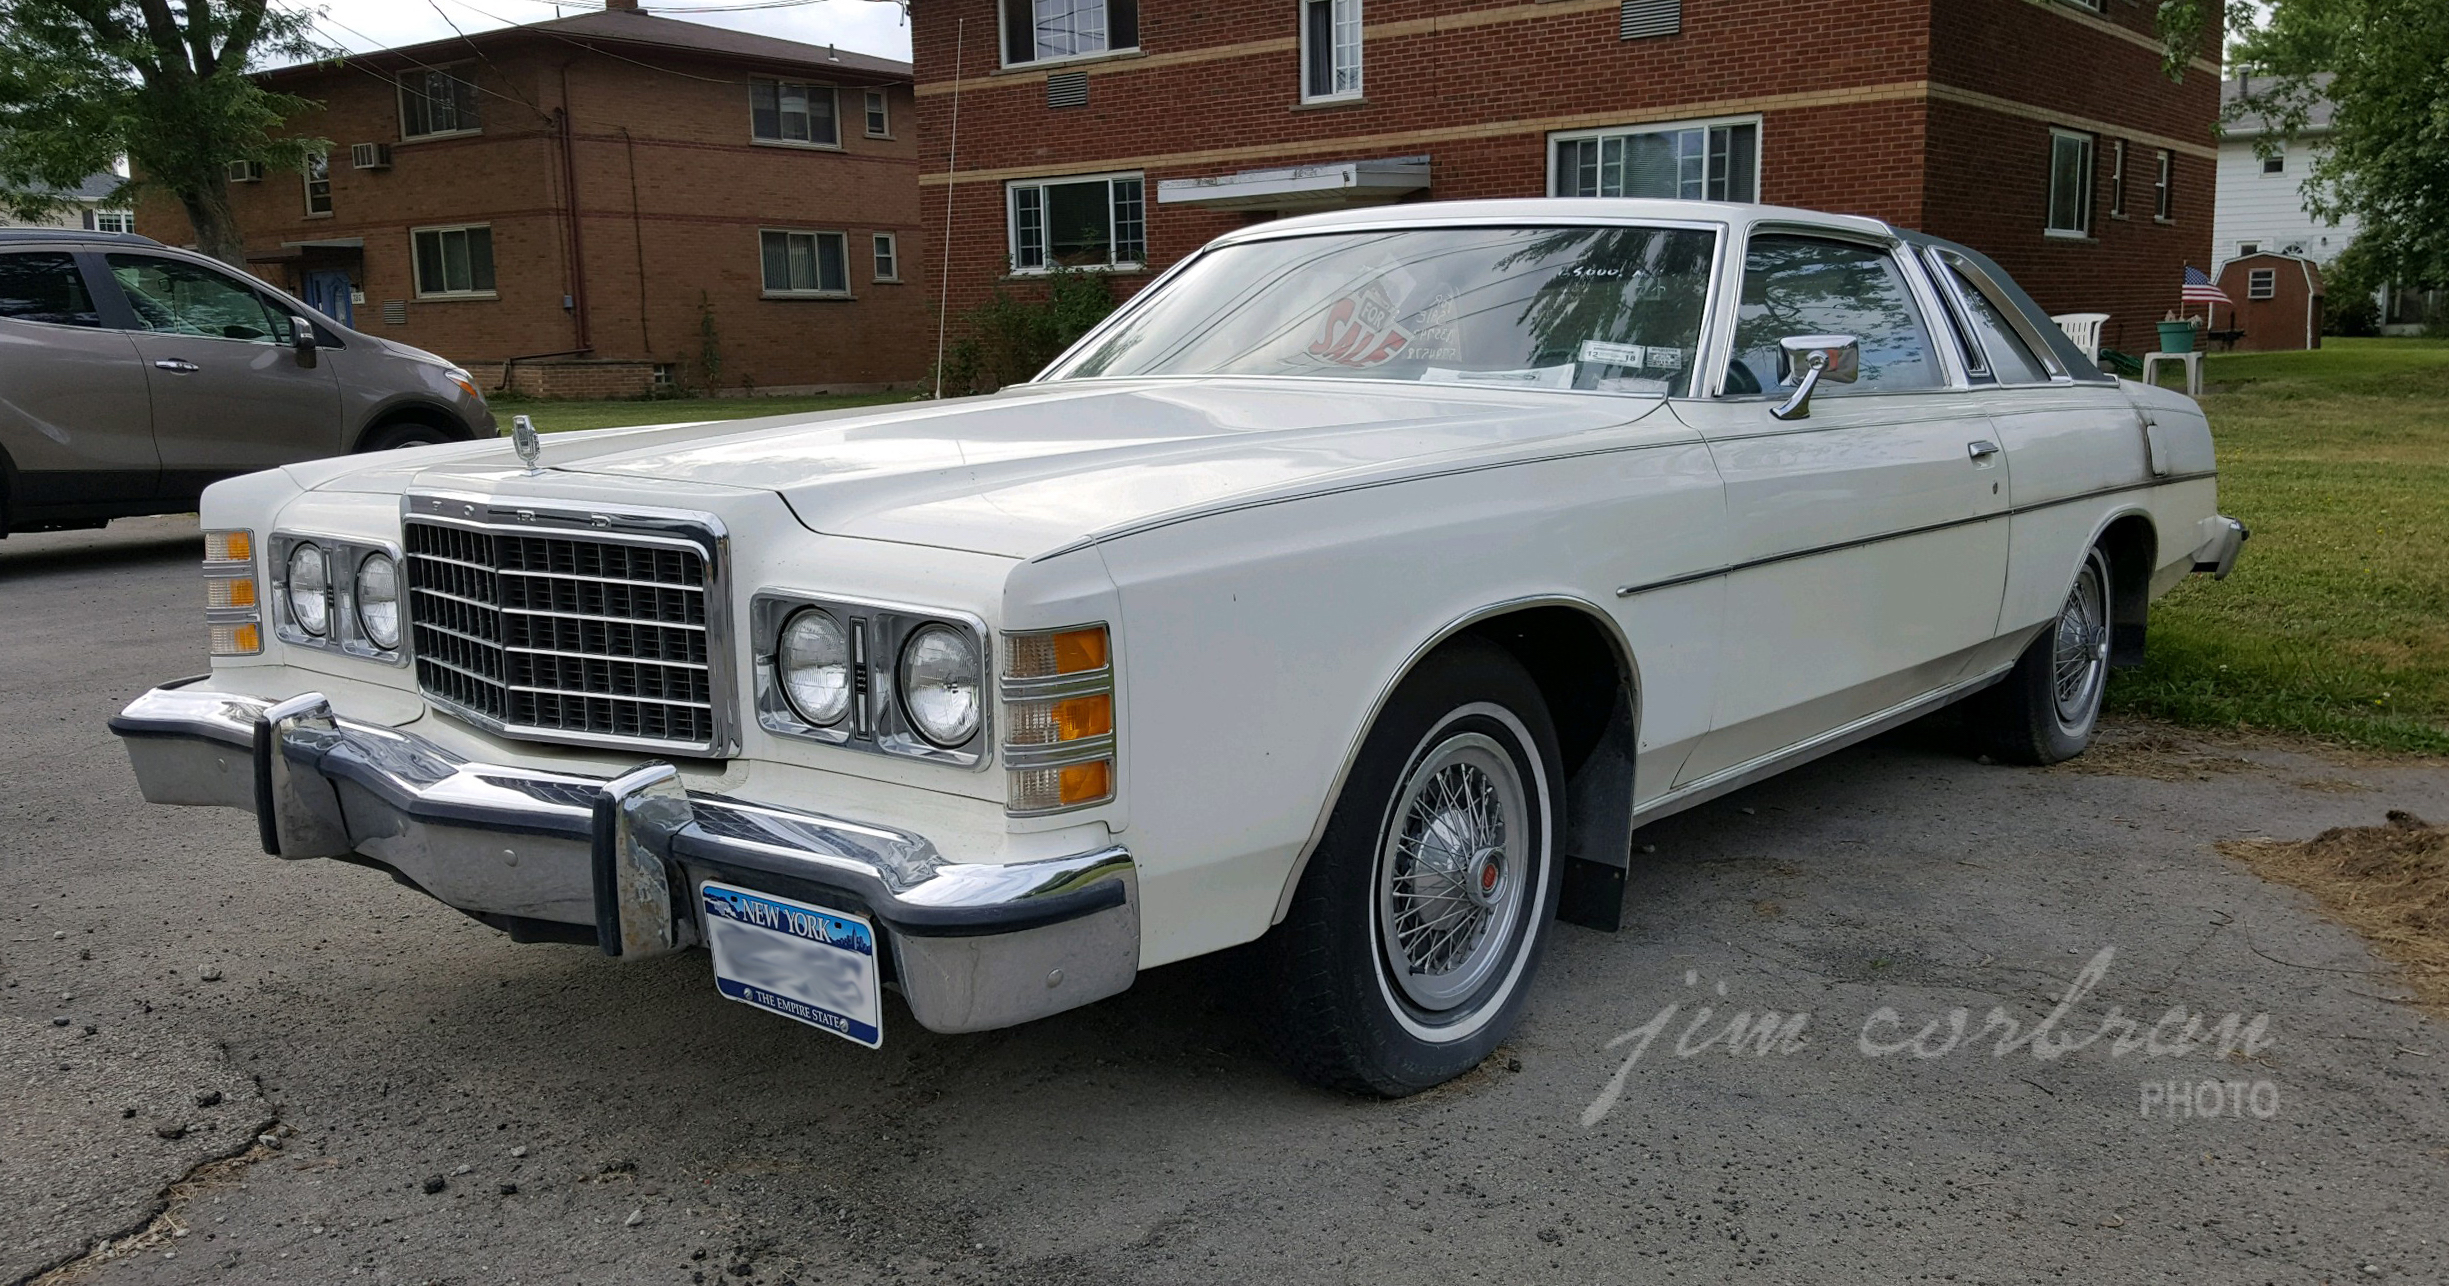 RealRides of WNY - 1977 Ford LTD